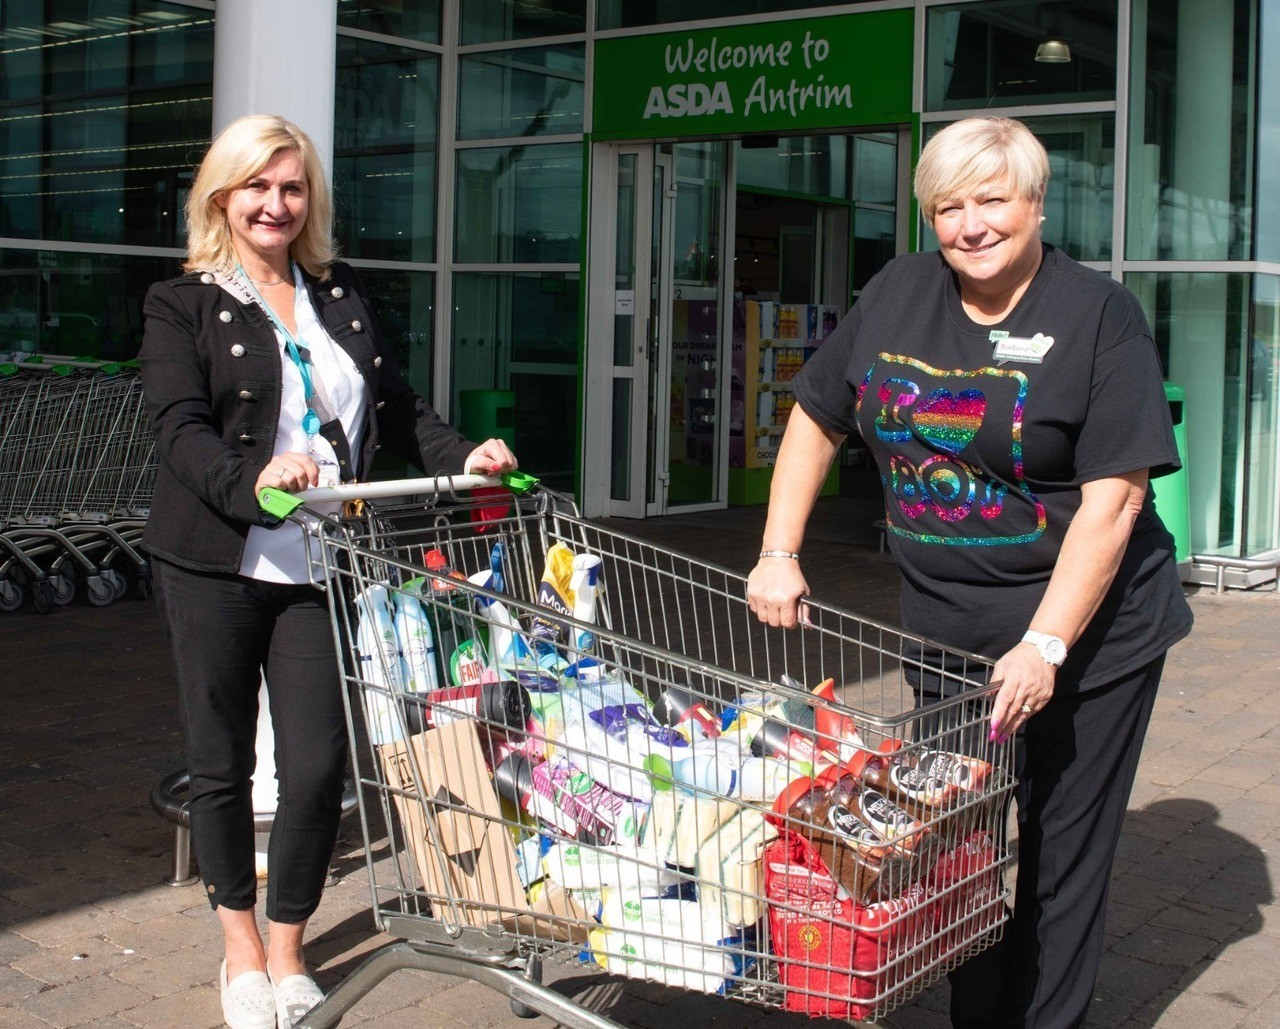 Donation of cleaning products for Antrim Adult Centre | Asda Antrim